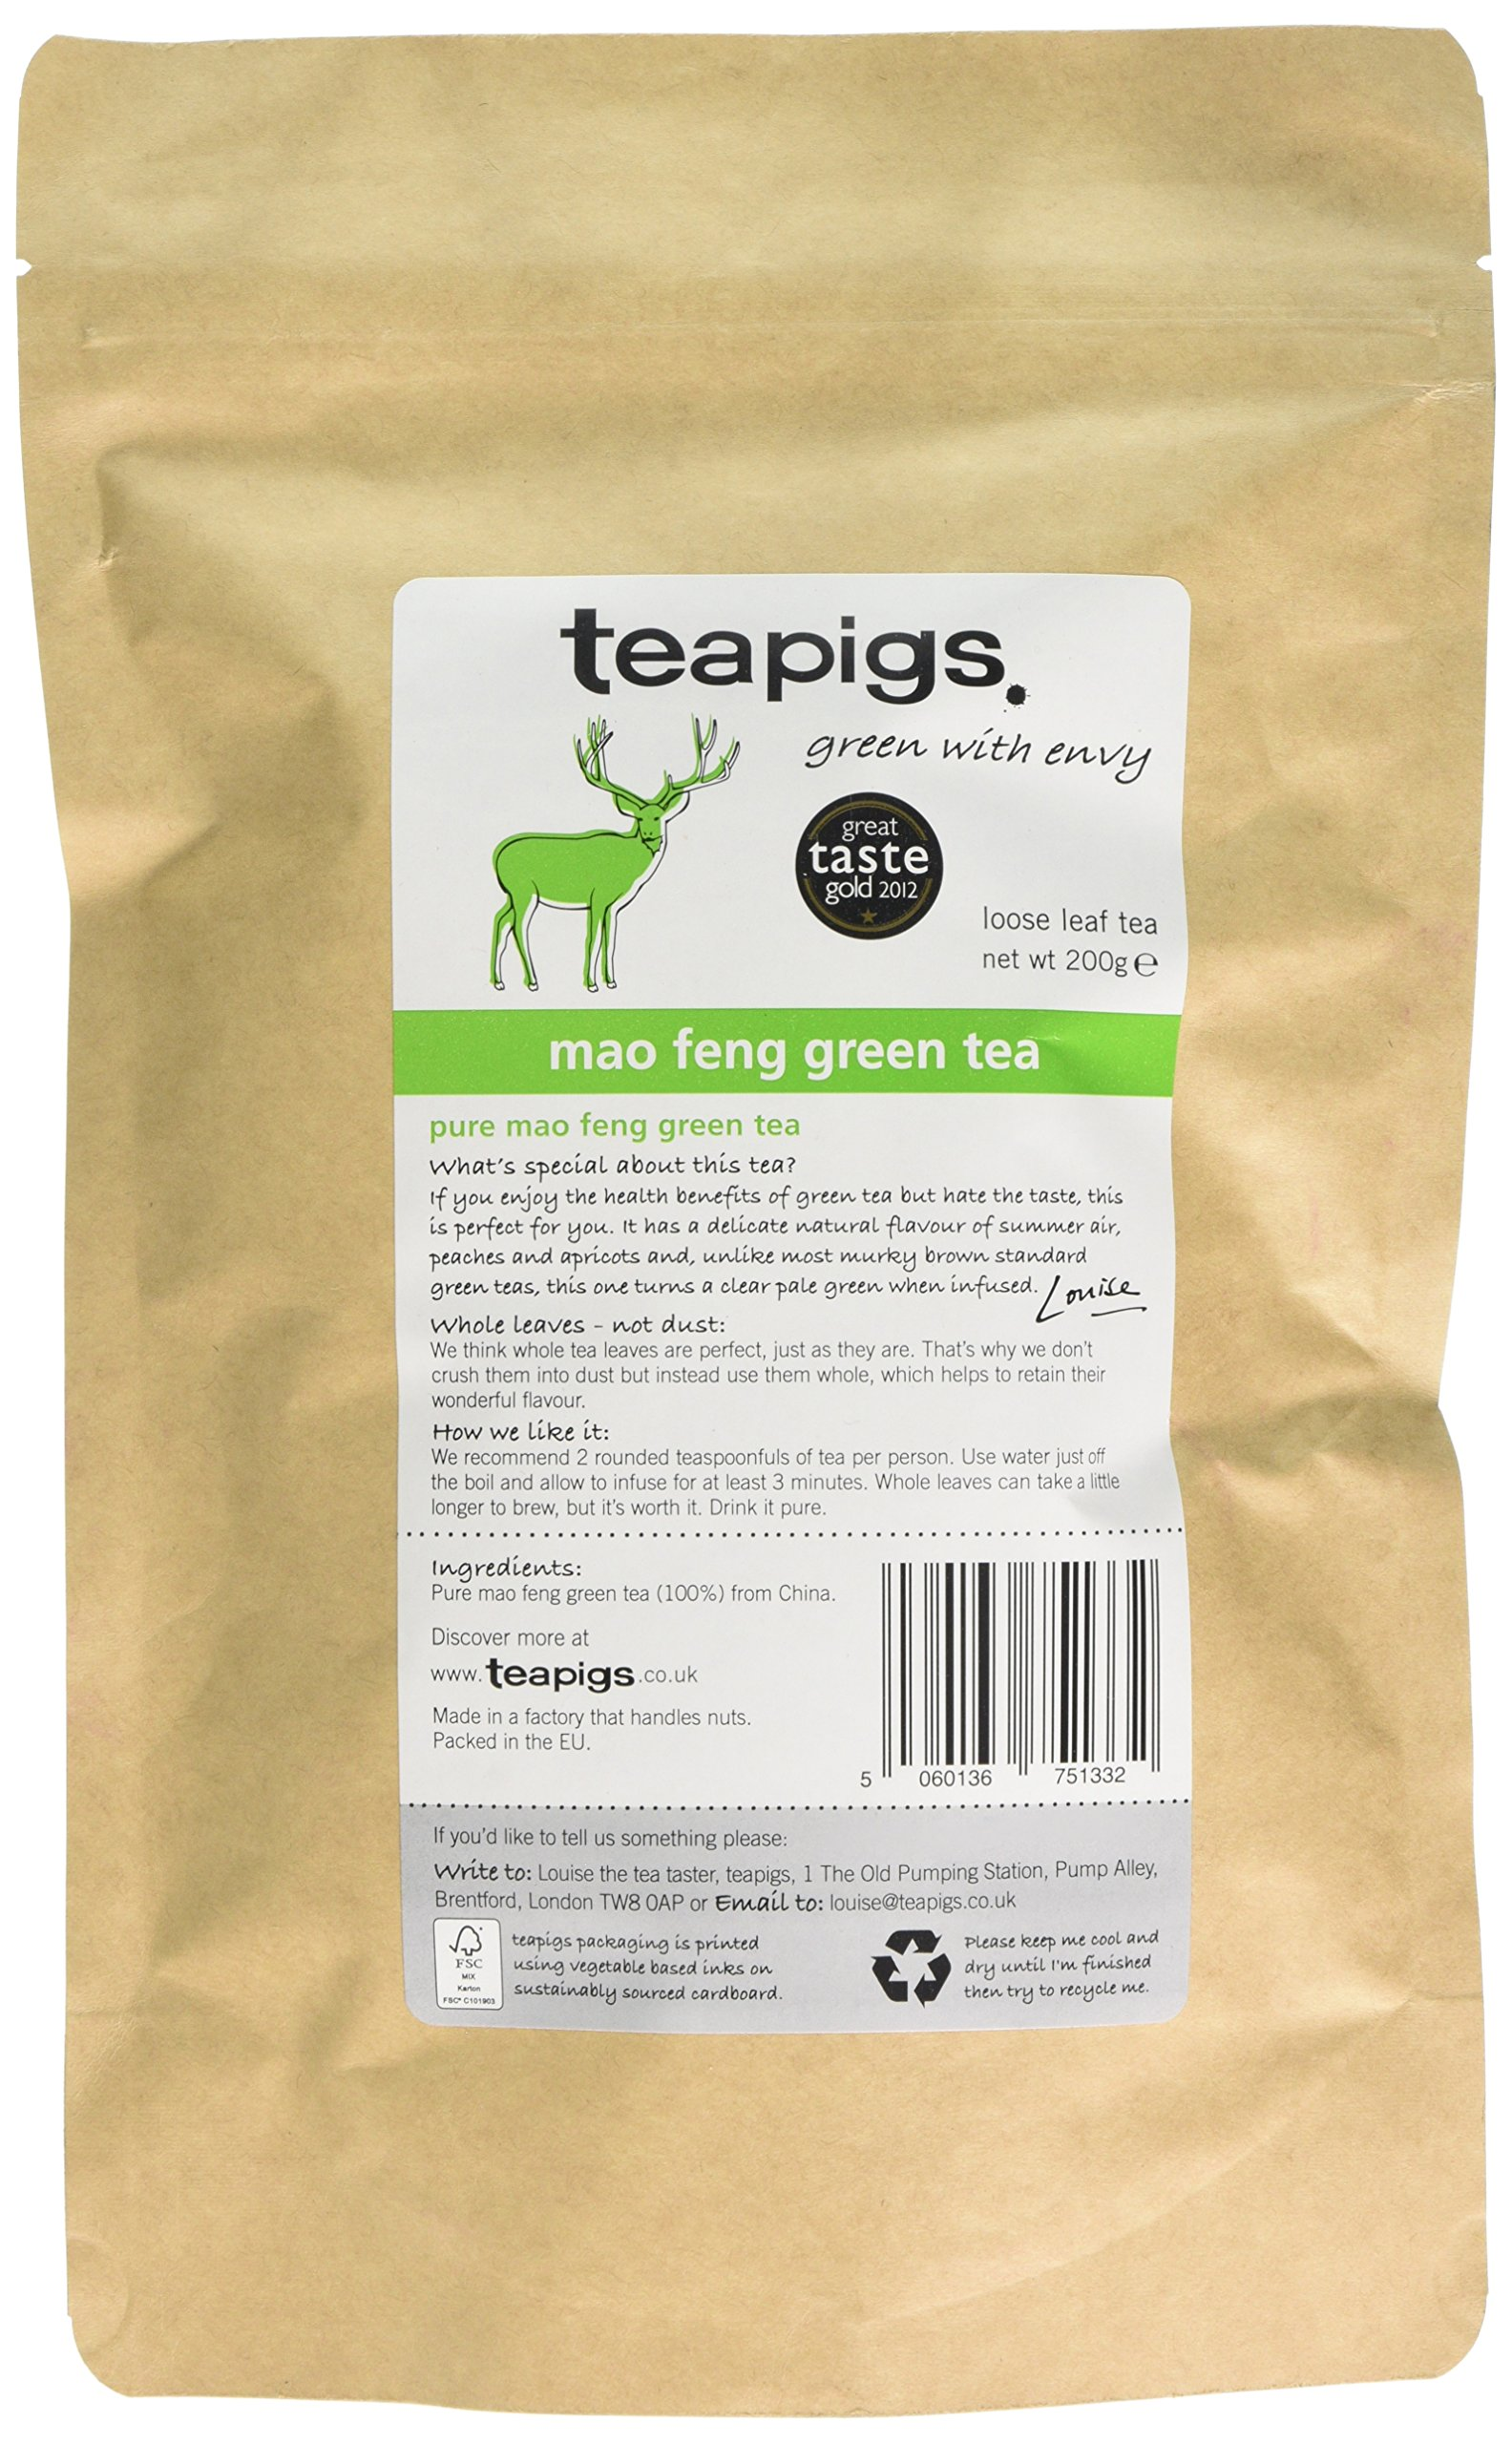 Teapigs mao feng green tea (green tea) (200g) (a fruity tea with aromas of apricots, peach) (brews in 3 minutes)